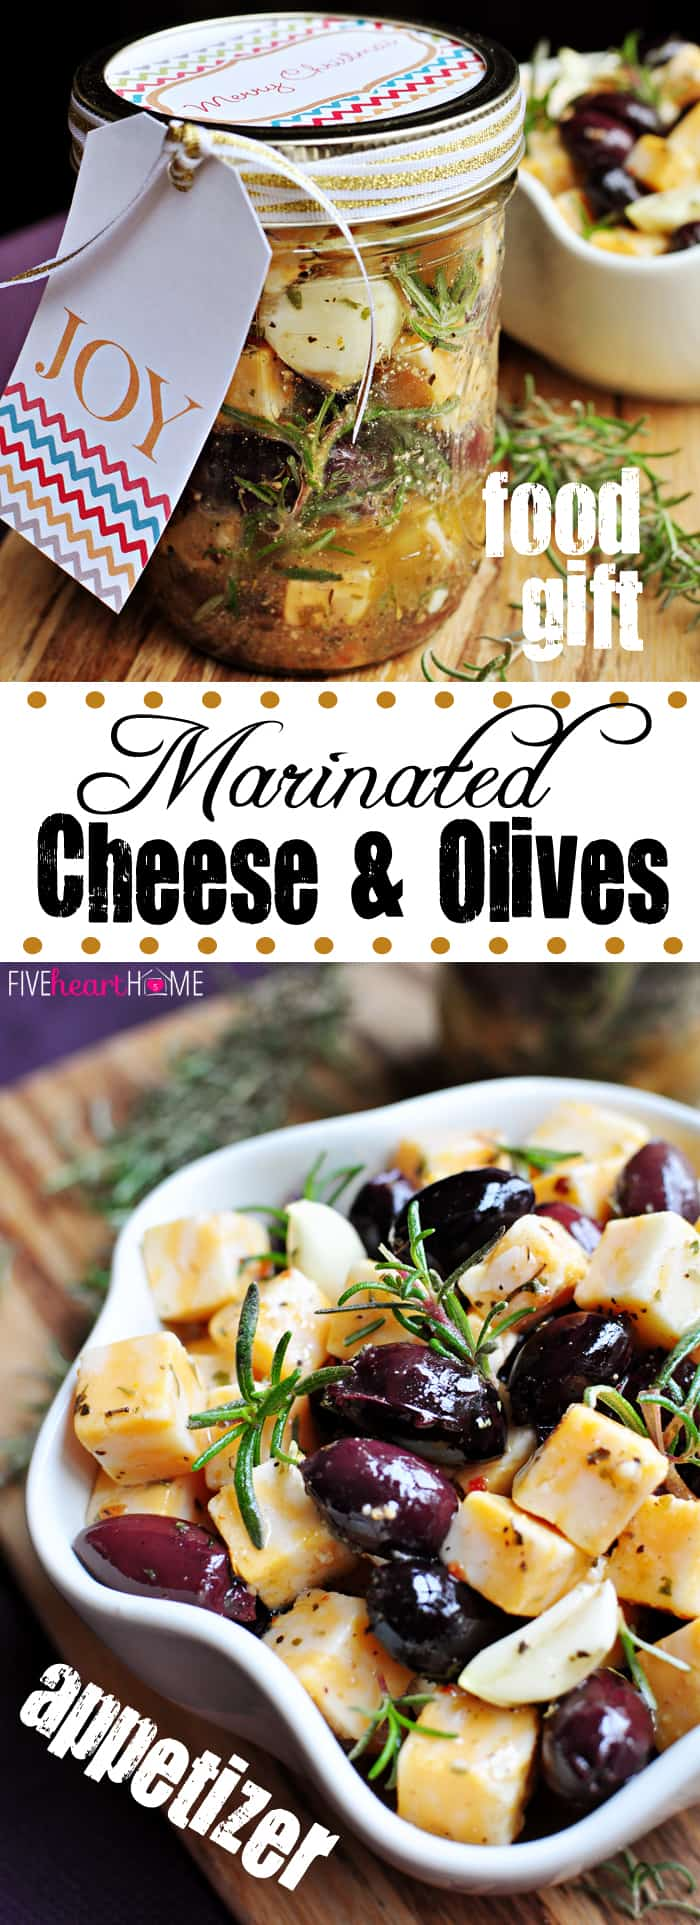 Marinated Cheese & Olives ~ An Easy Appetizer or Food Gift in a Jar!